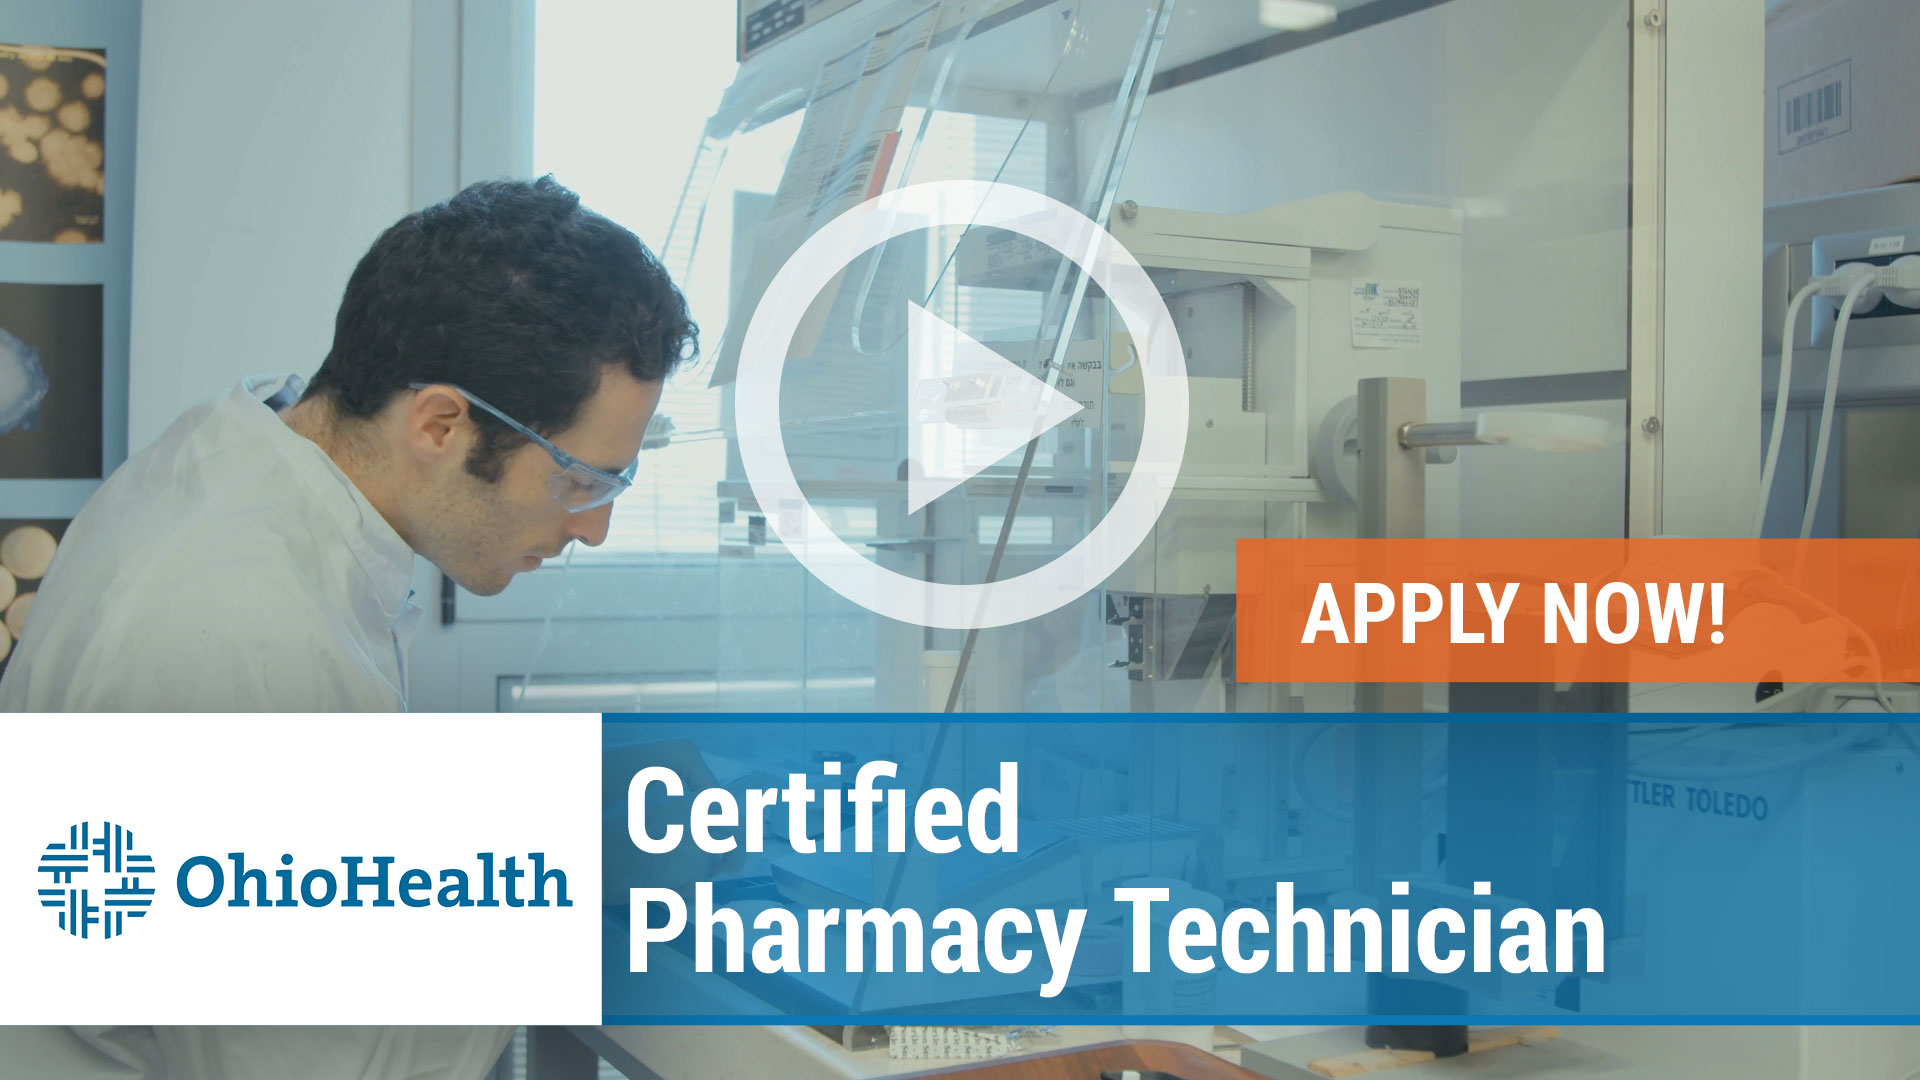 Watch our careers video for available job opening Certified Pharmacy Technician in Columbus, Ohio